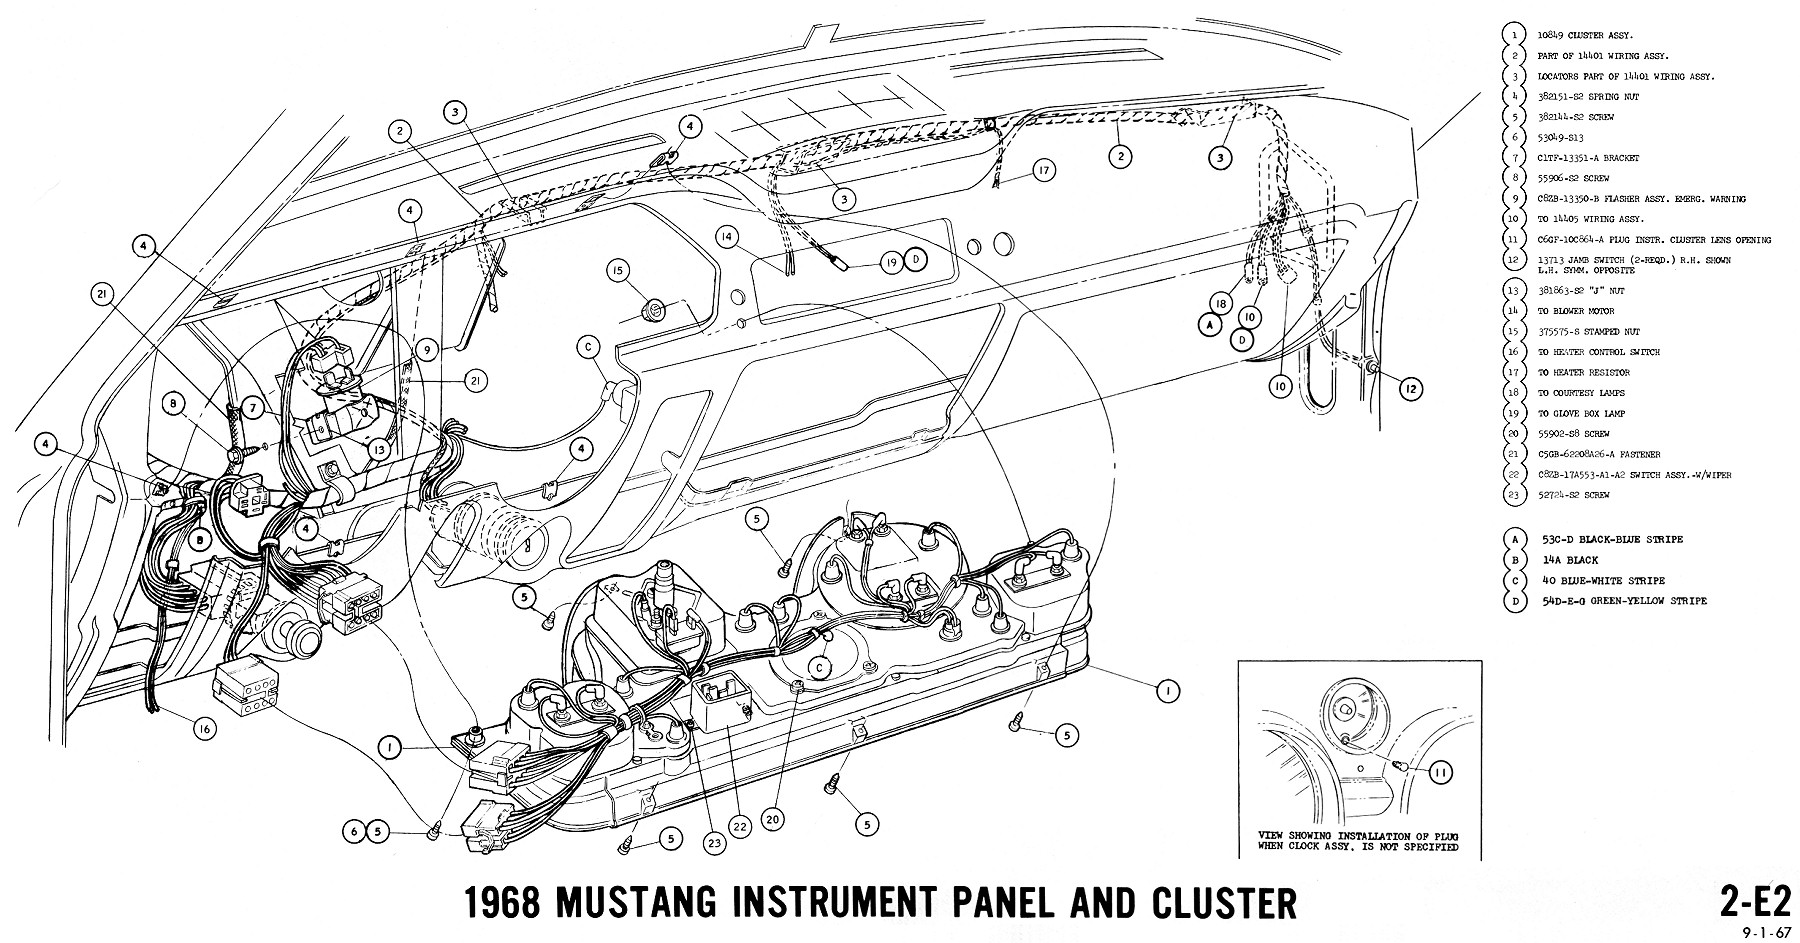 1968 mustang wiring diagram instruments 2 1968 mustang wiring diagram manual 68 mustang ignition wiring 66 mustang ignition wiring diagram at soozxer.org